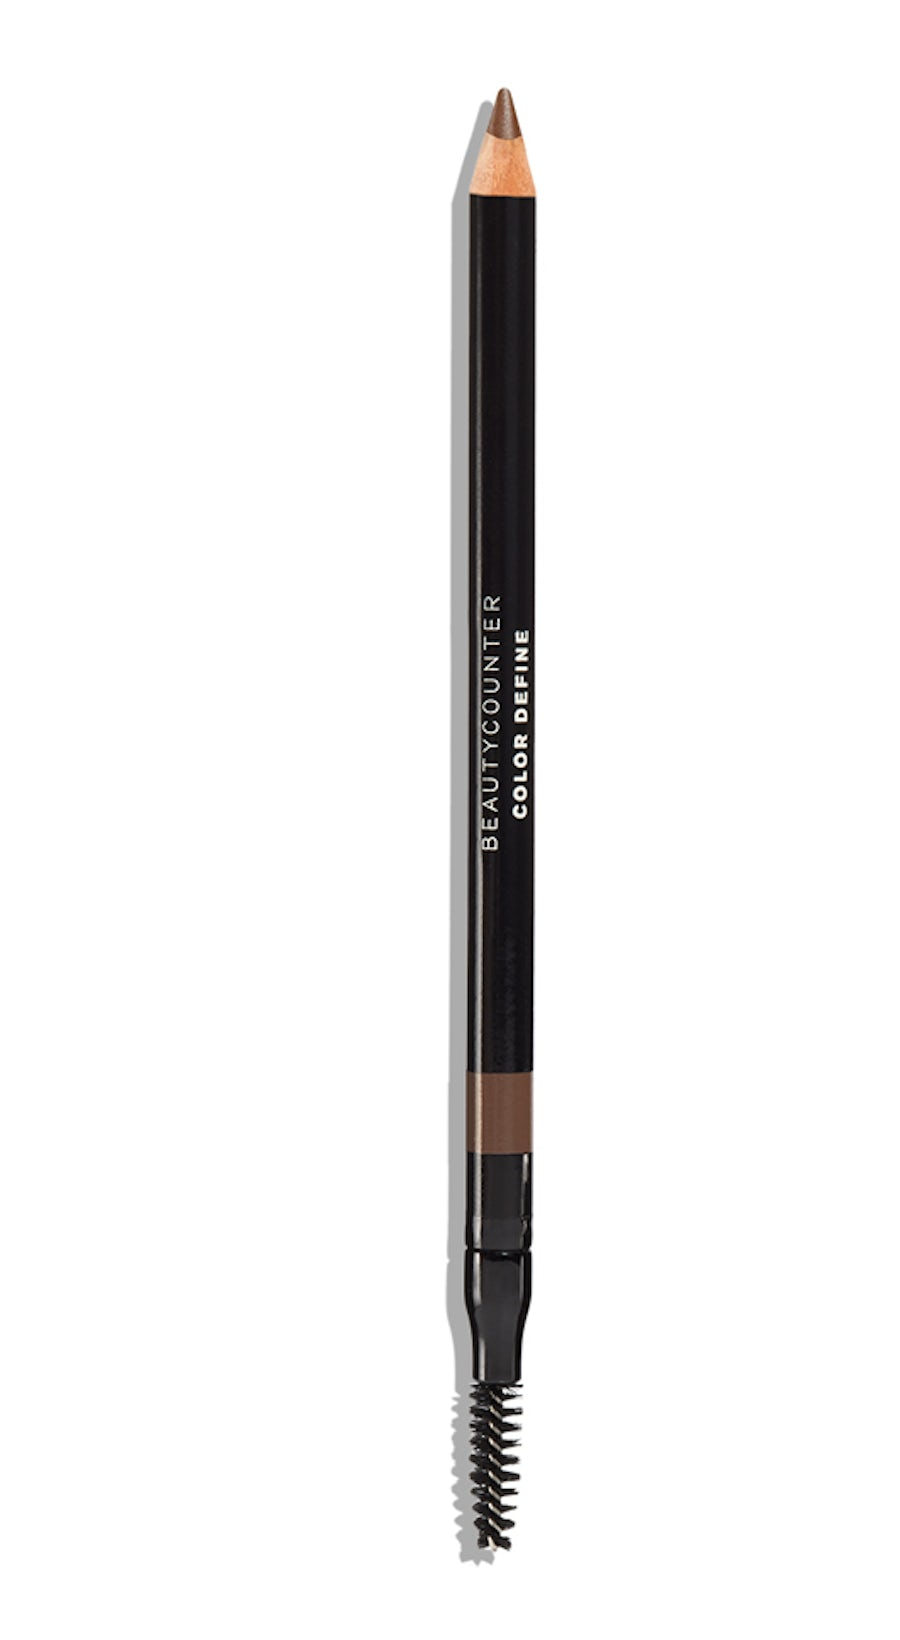 Color Define Brow Pencil in Medium